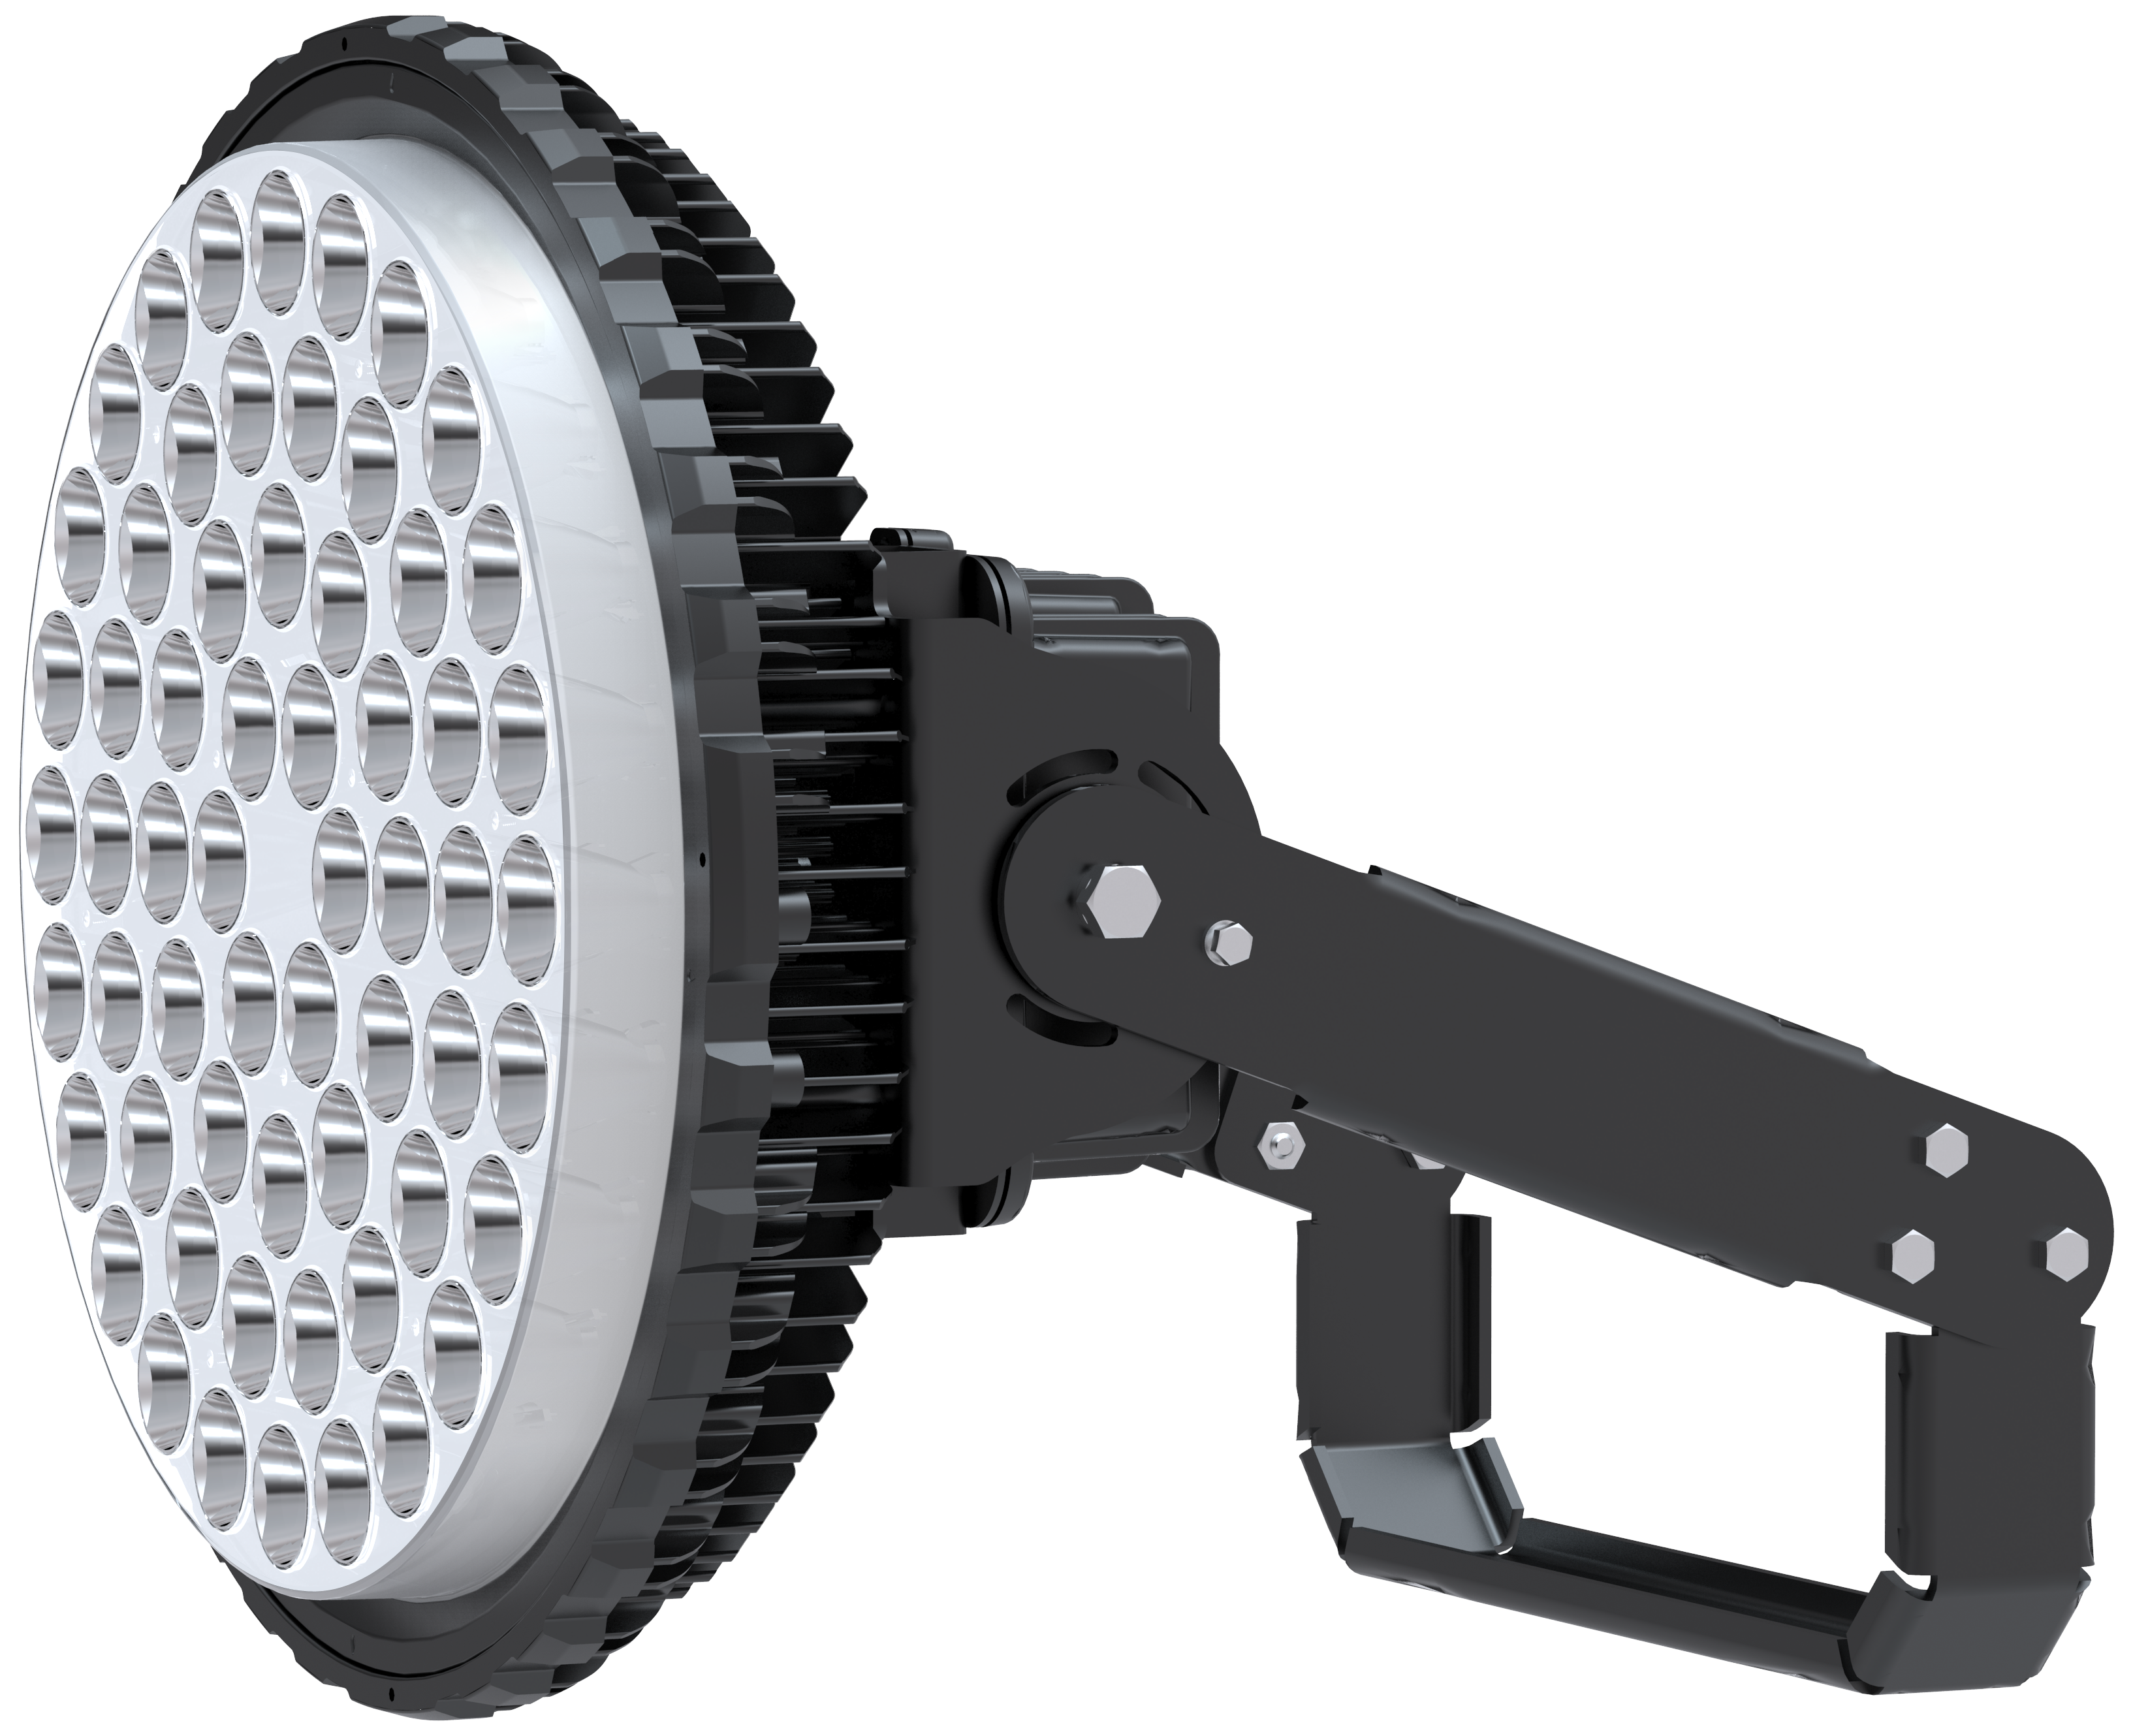 LED Sports Lights Featured Light